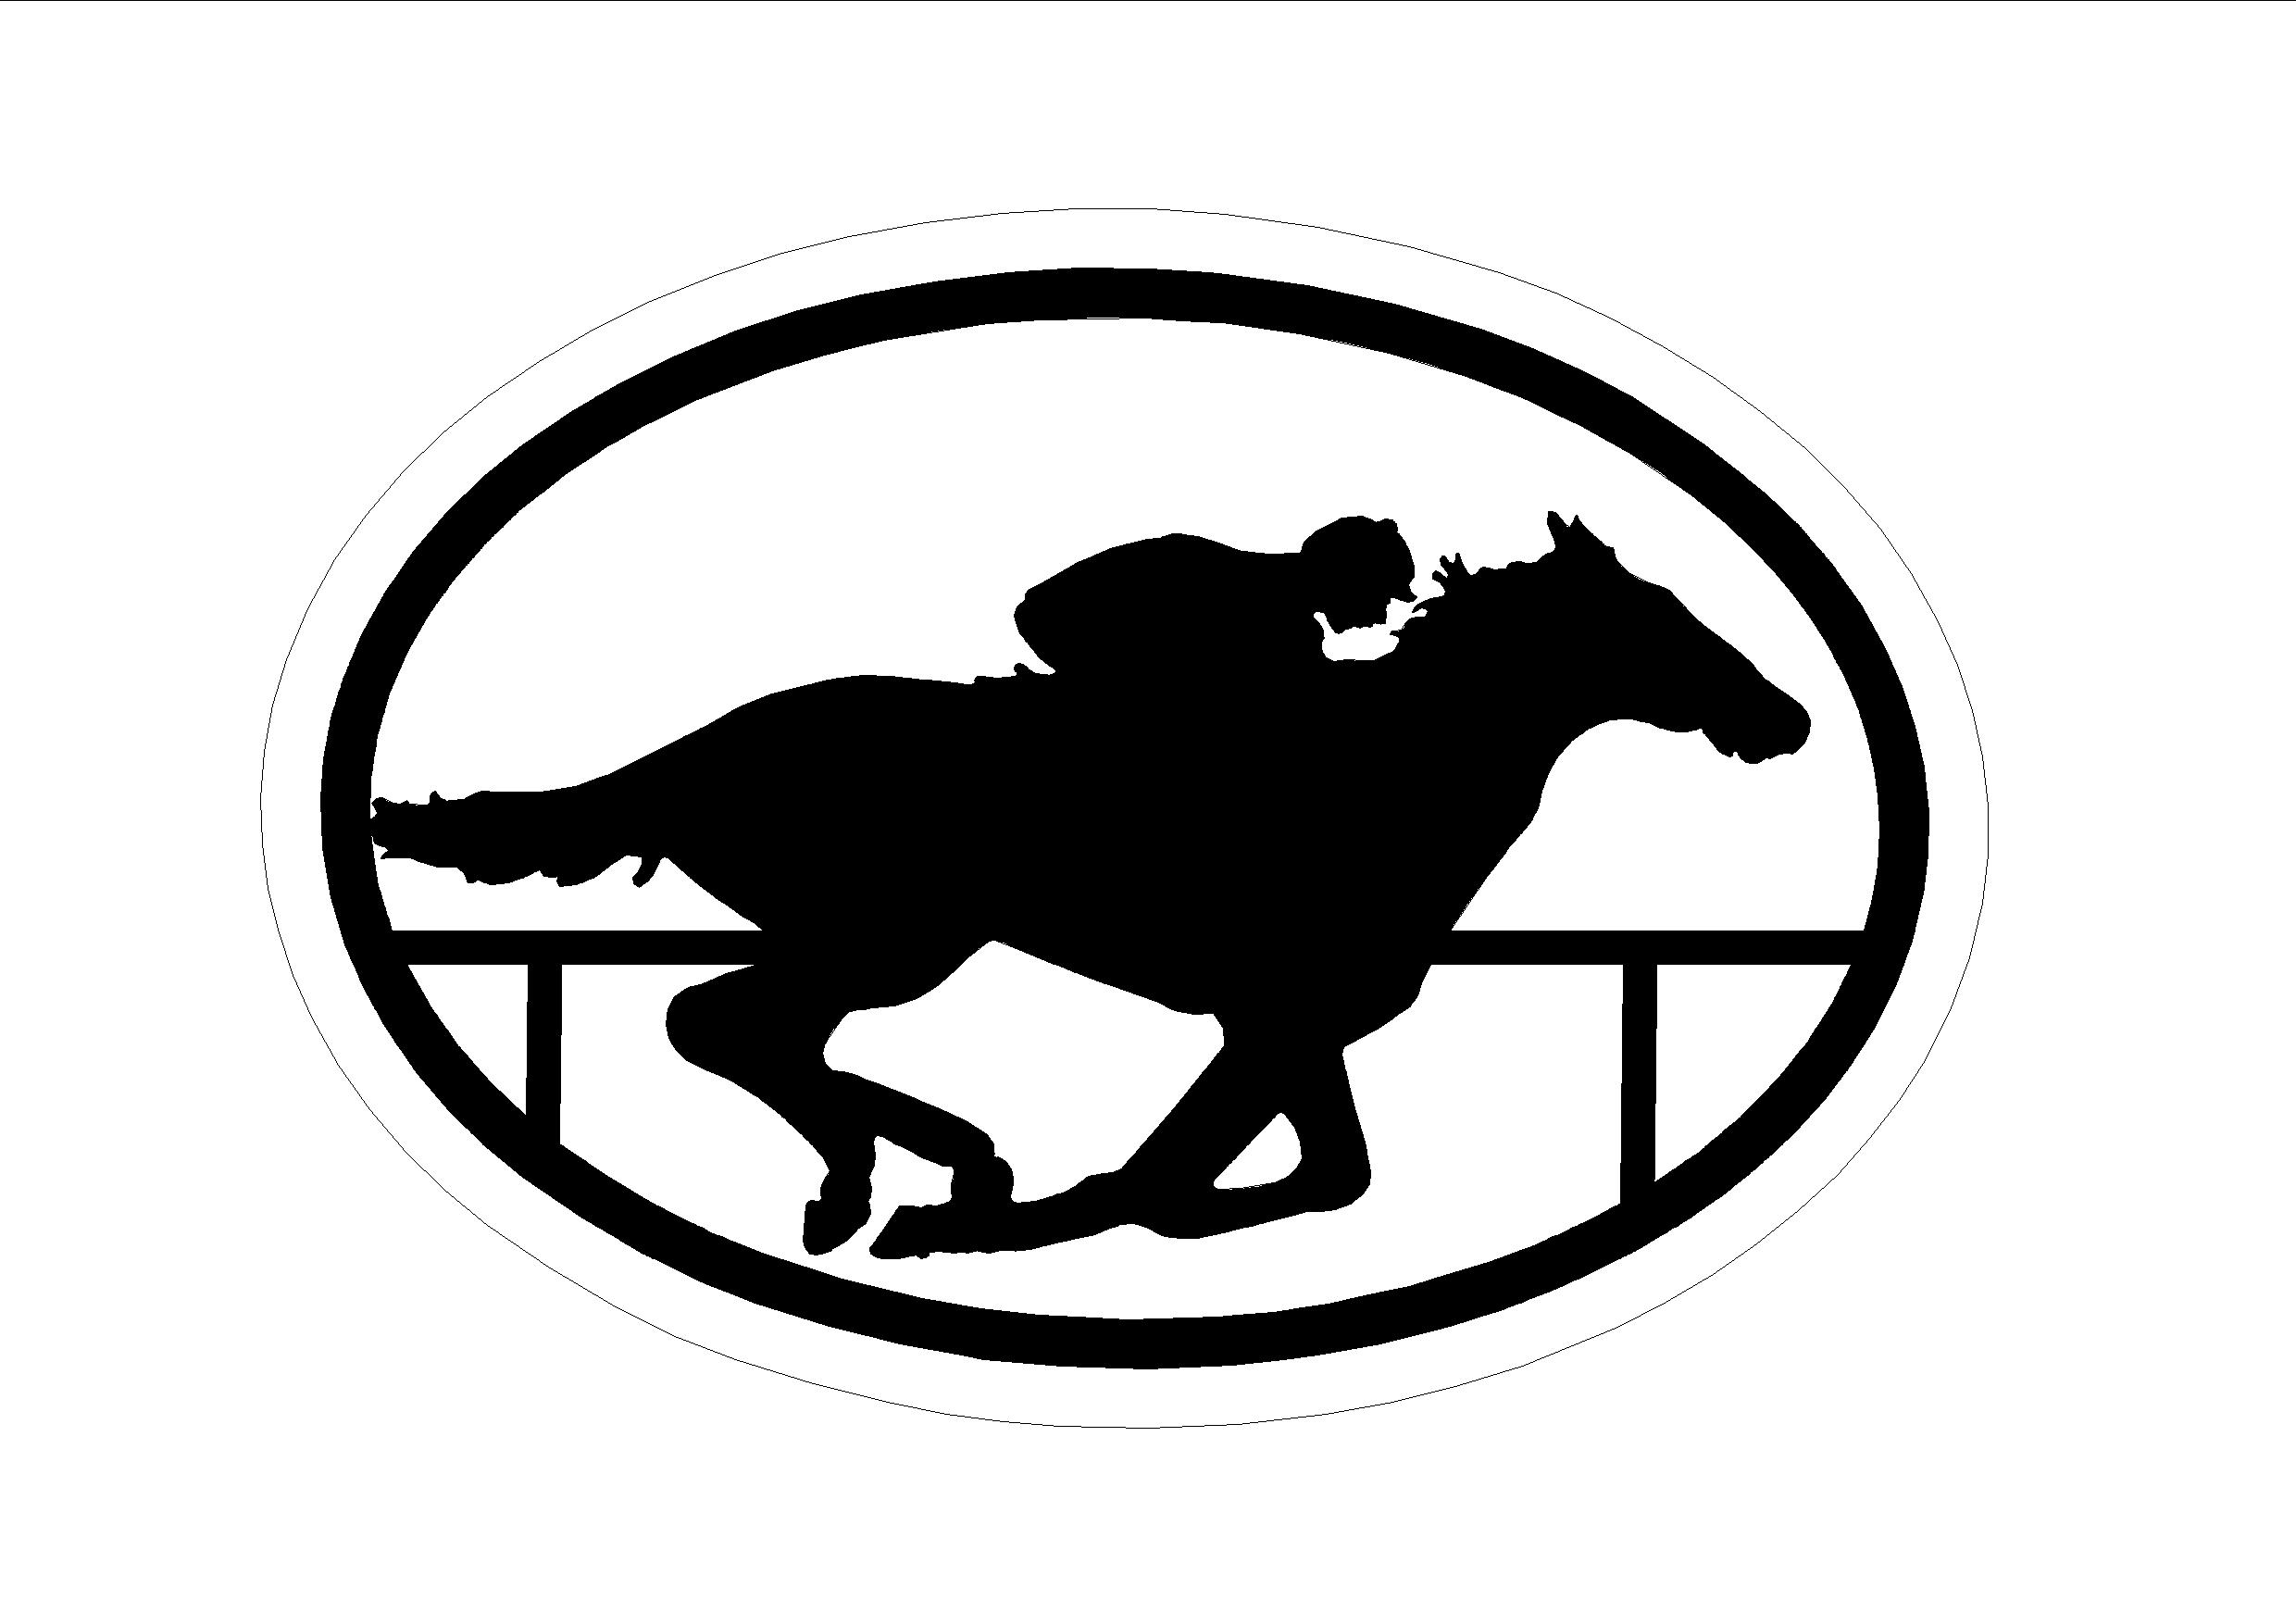 Clipart Of The Horse Rider Silhouette Free Image